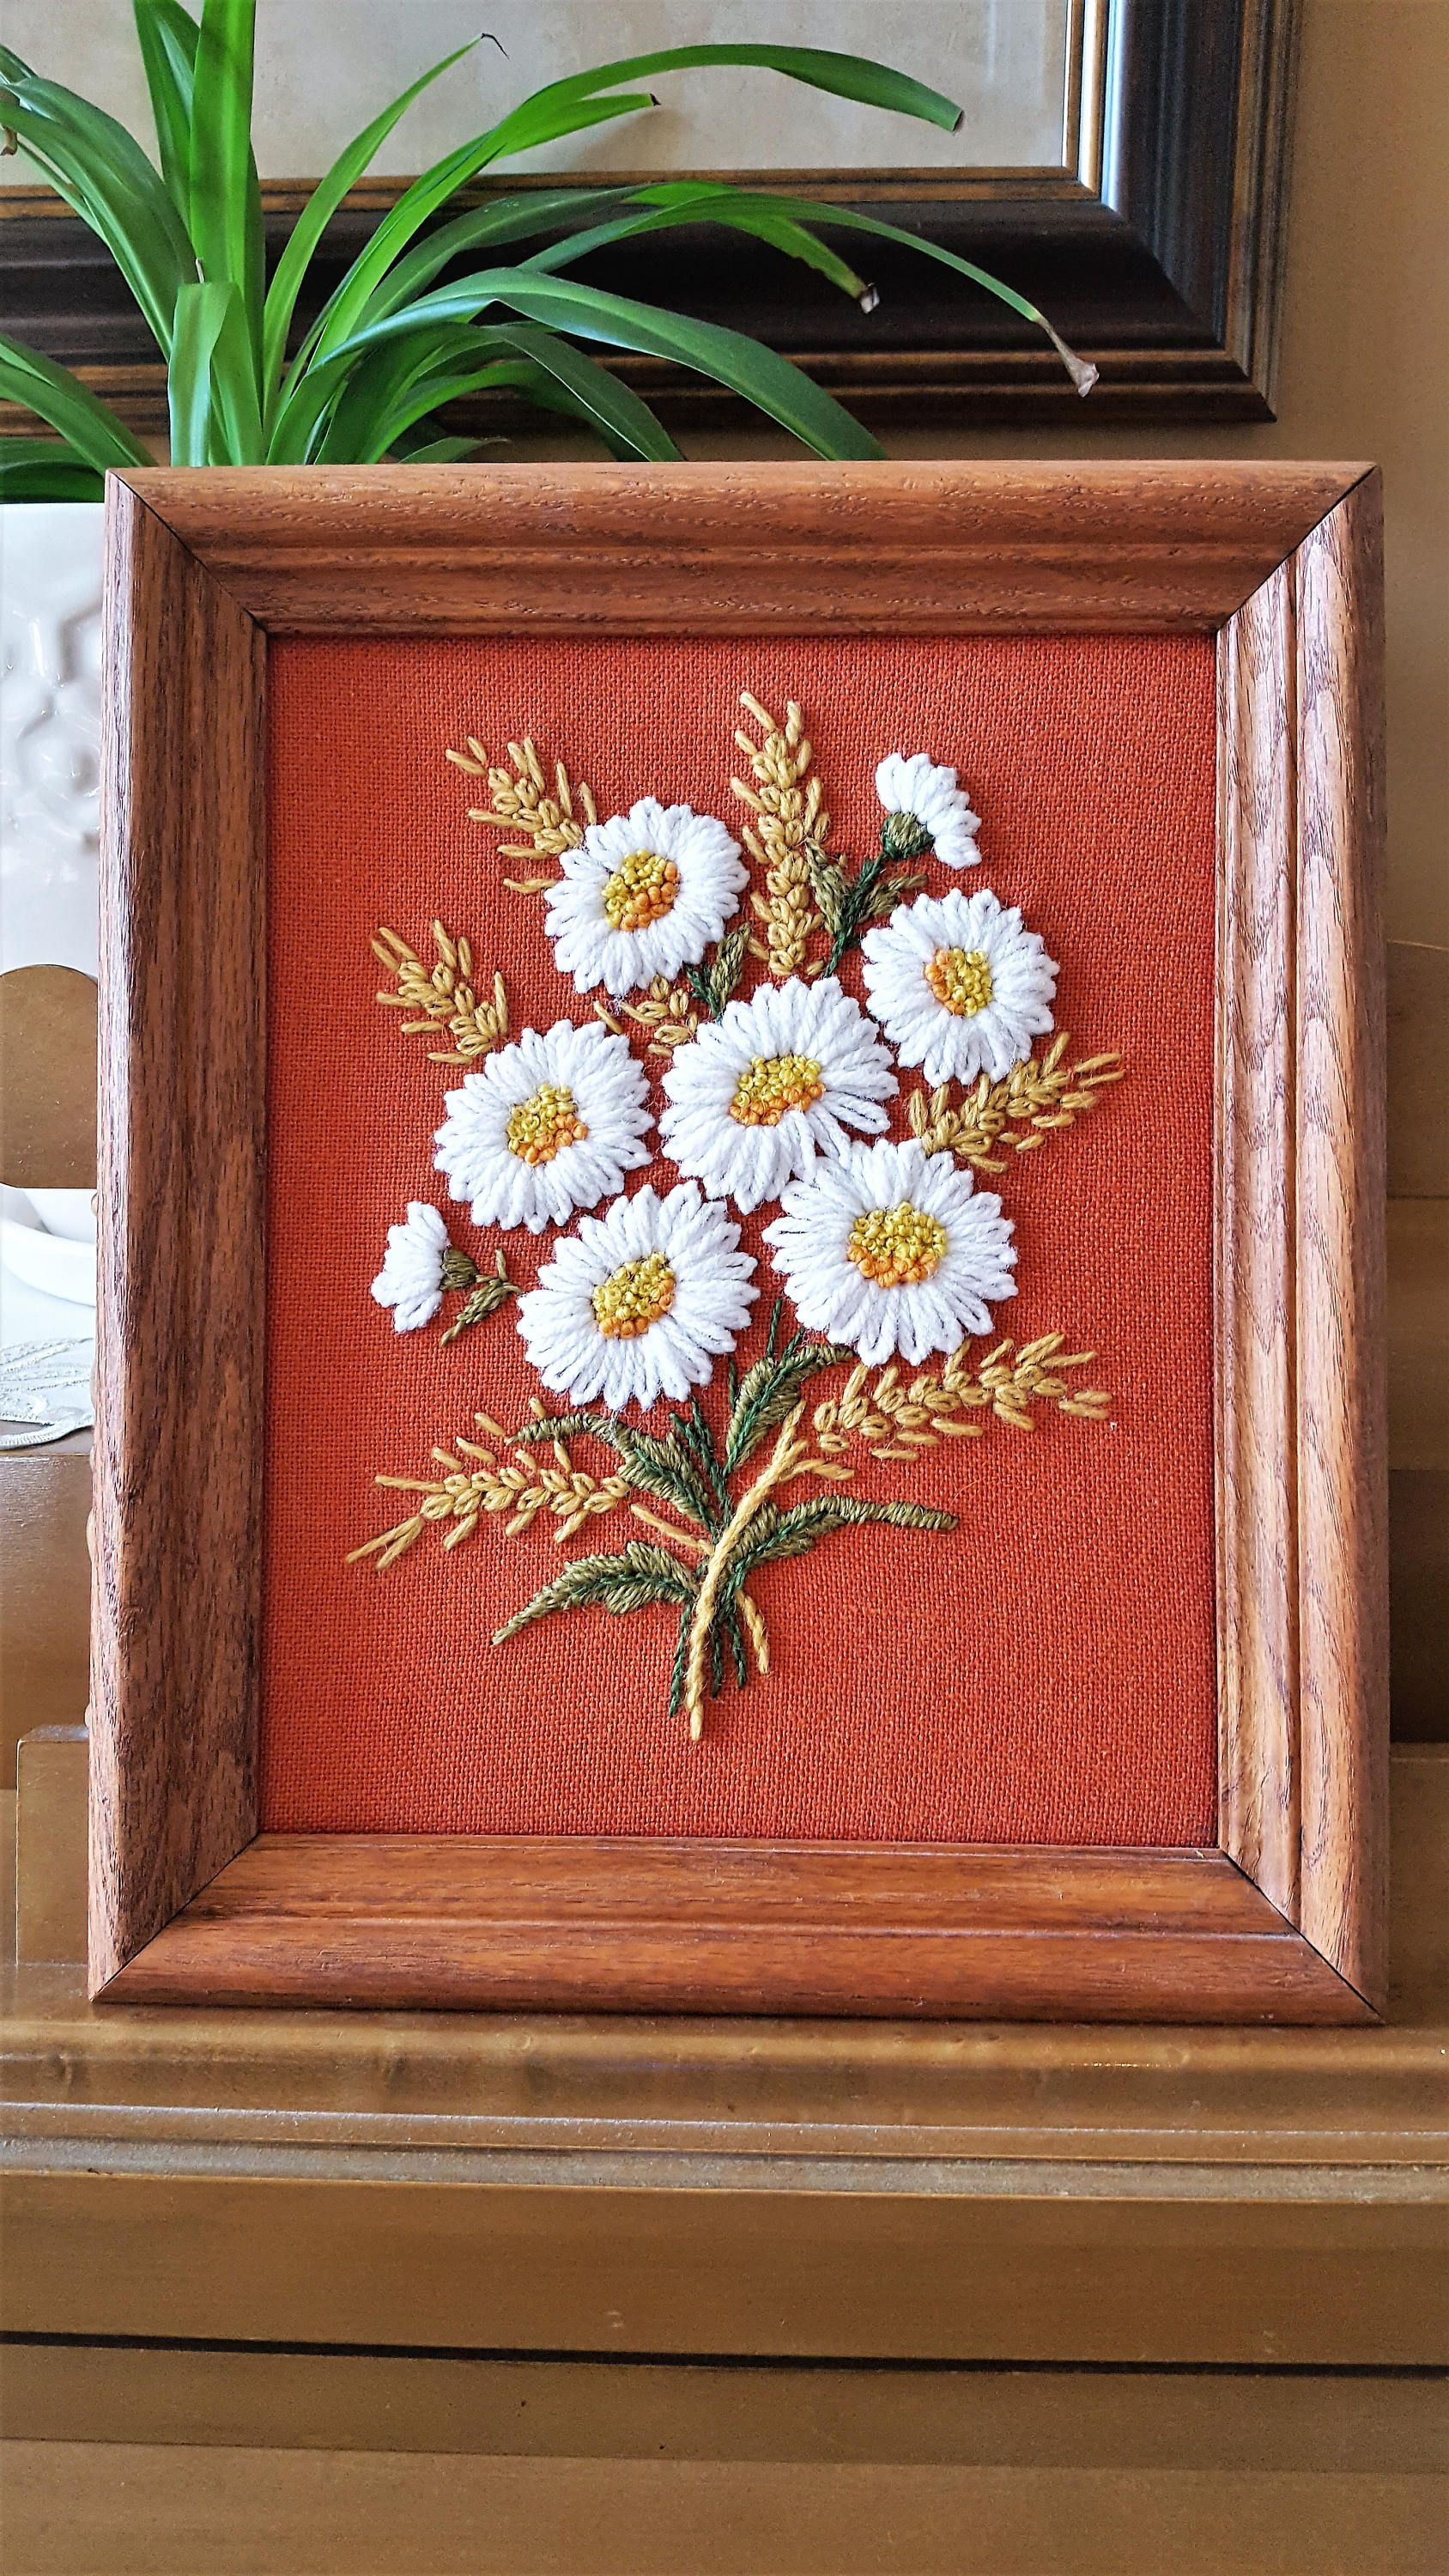 For Sale Vintage Framed Floral Crewel Embroidery Wall Decor By Sodarnedvintage On Etsy Embroidery C Embroidery Wall Art Framed Embroidery Crewel Embroidery